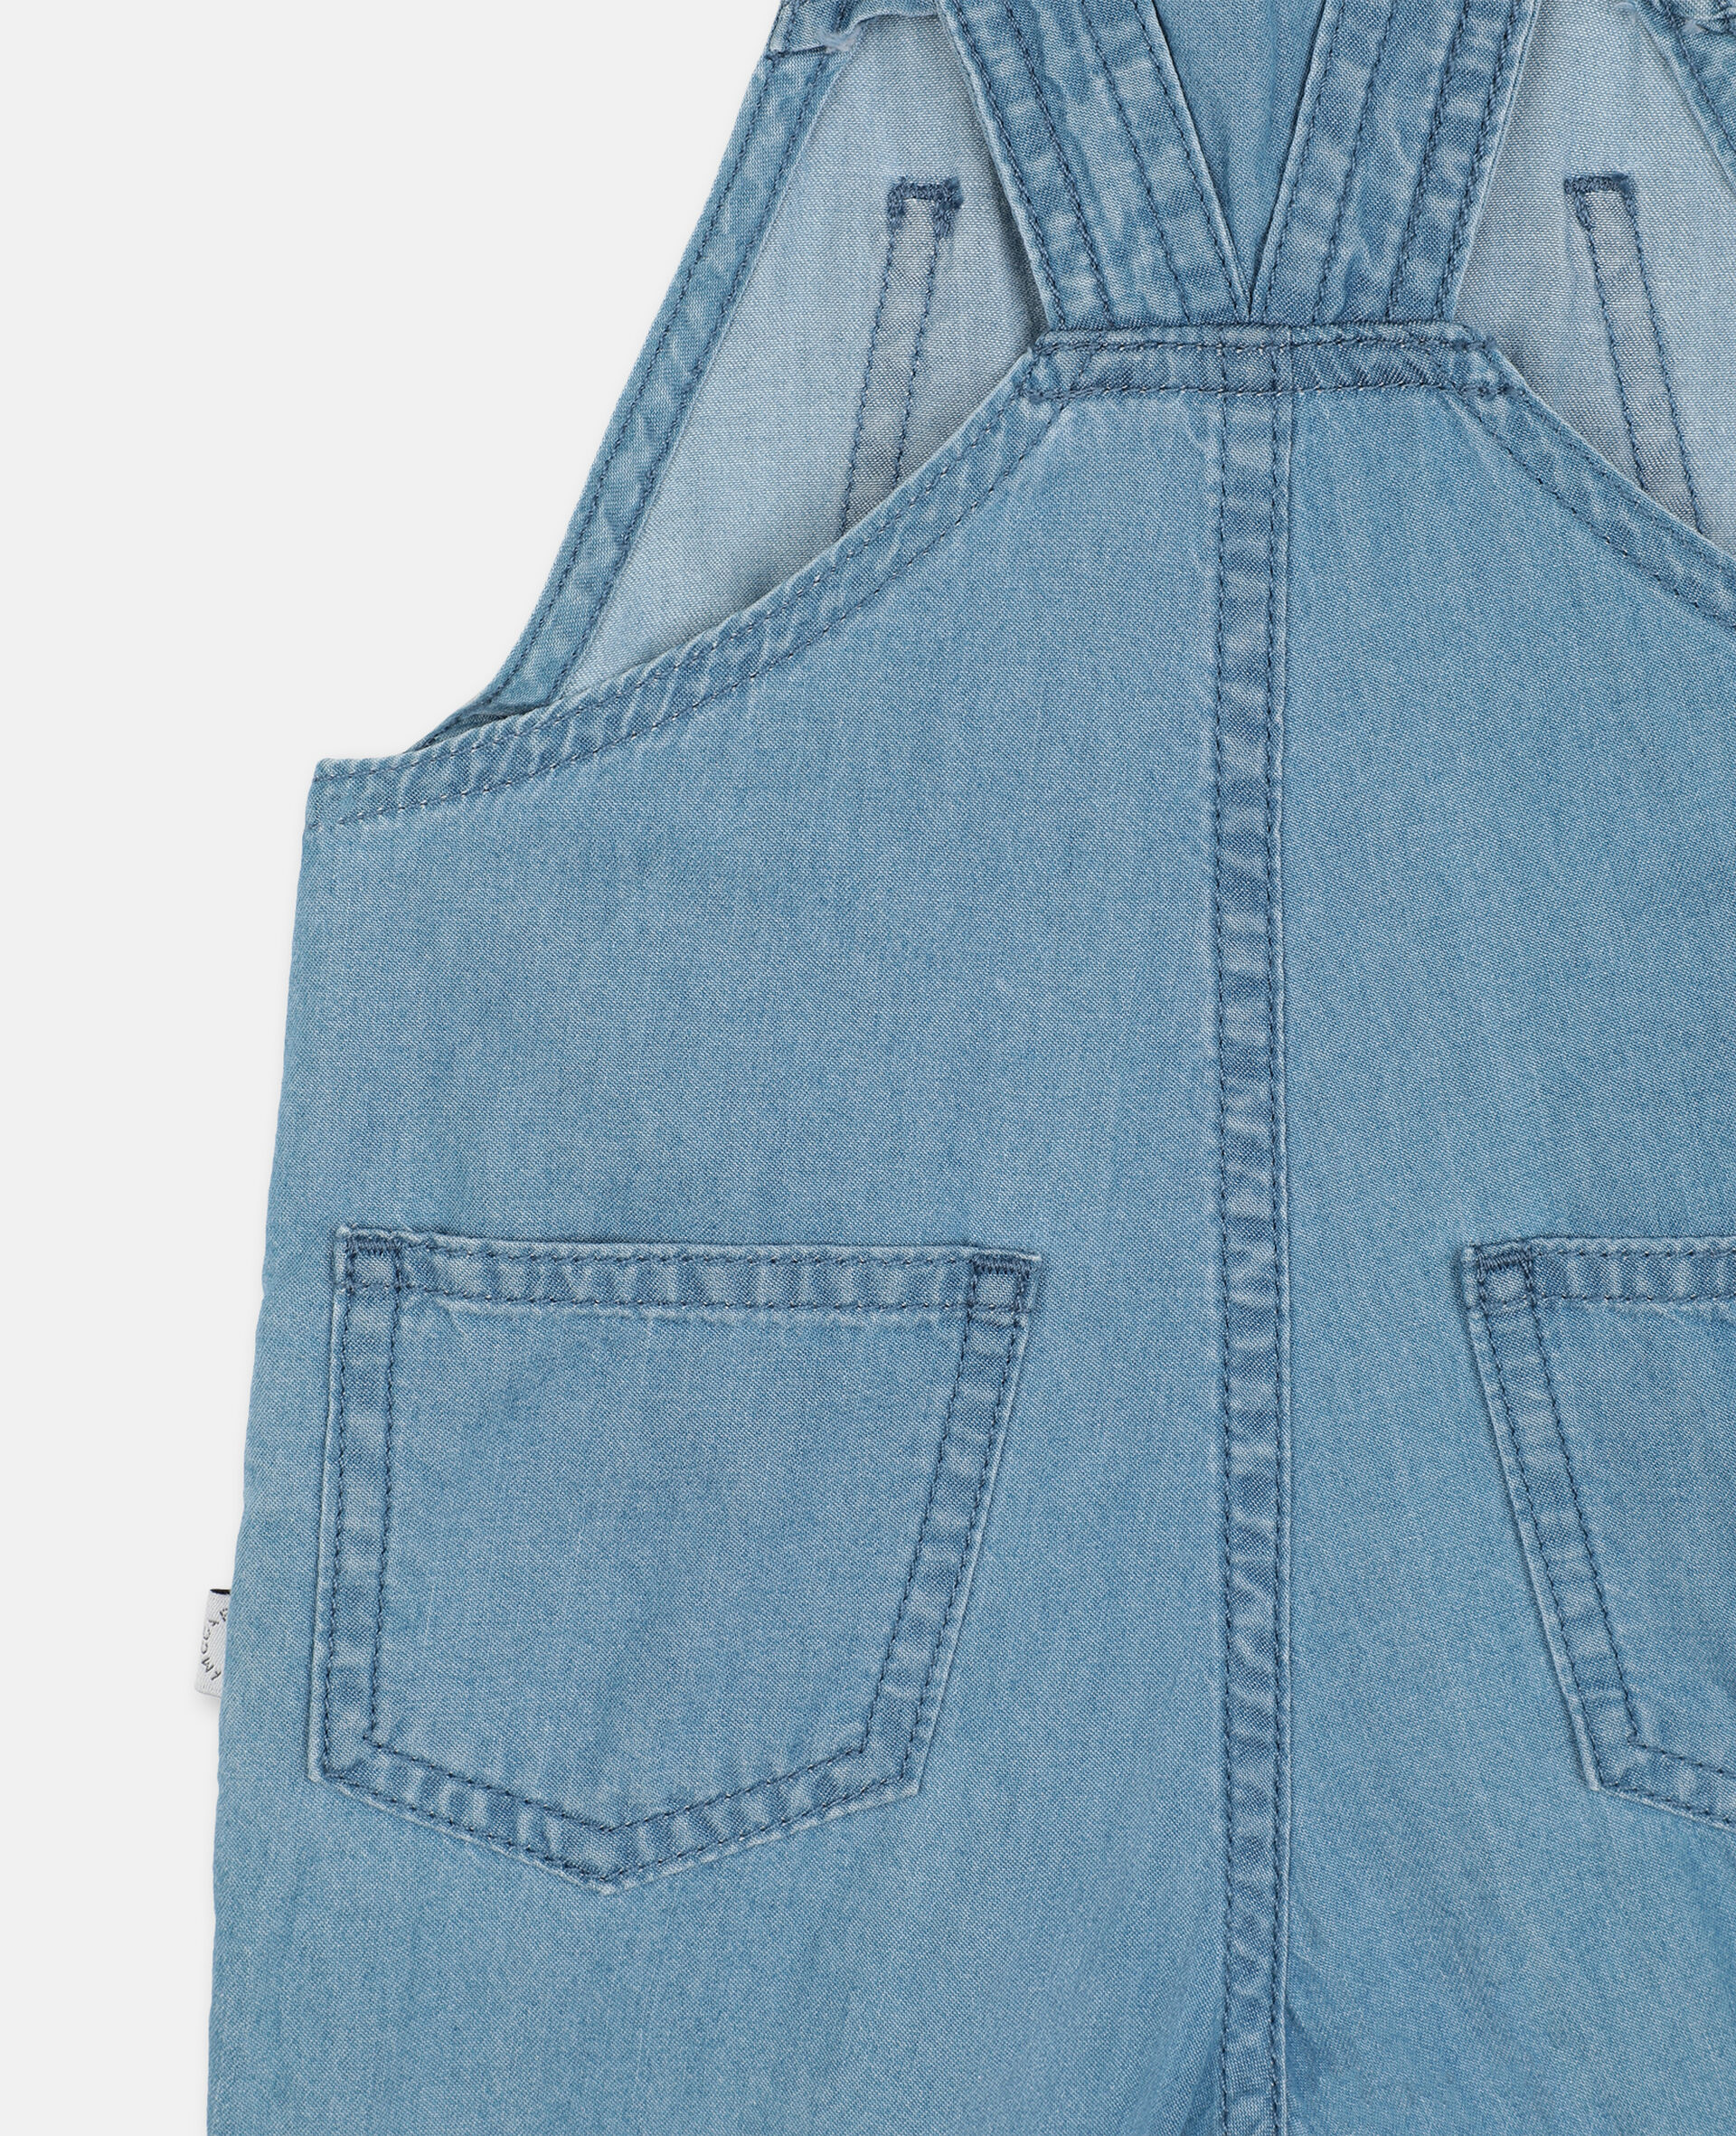 Embroidered Cats Cotton Chambray Overalls-Blue-large image number 2